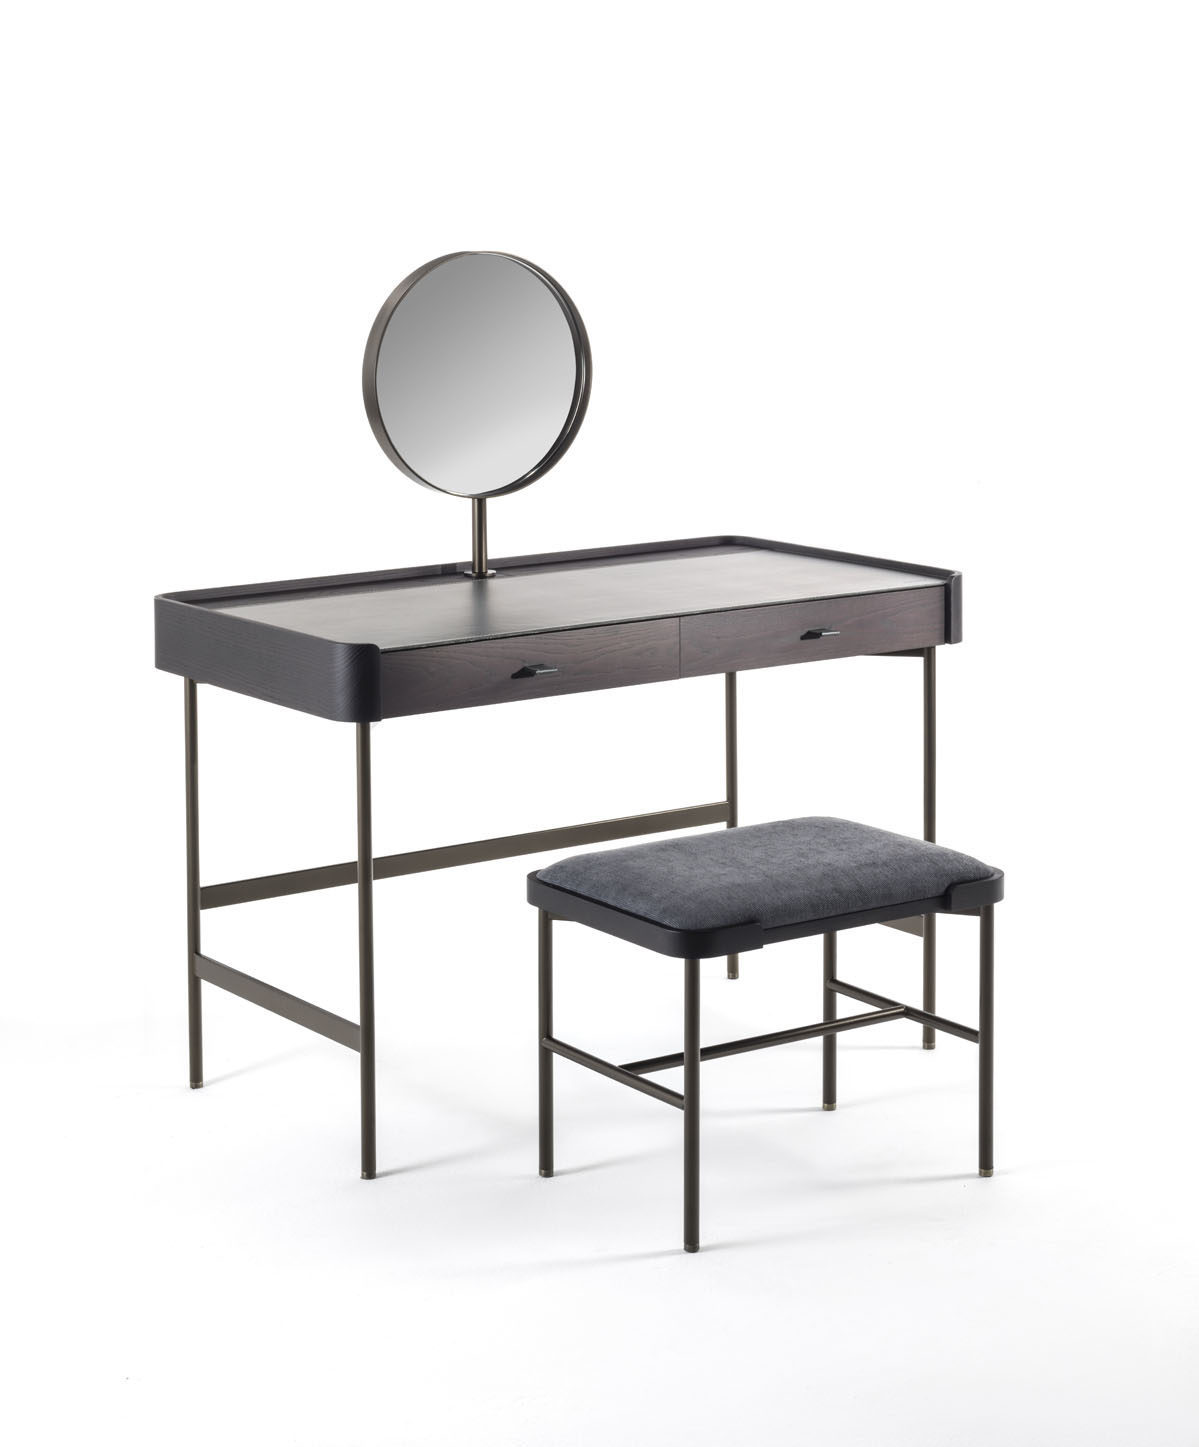 Porada dafto dressing table, interior design